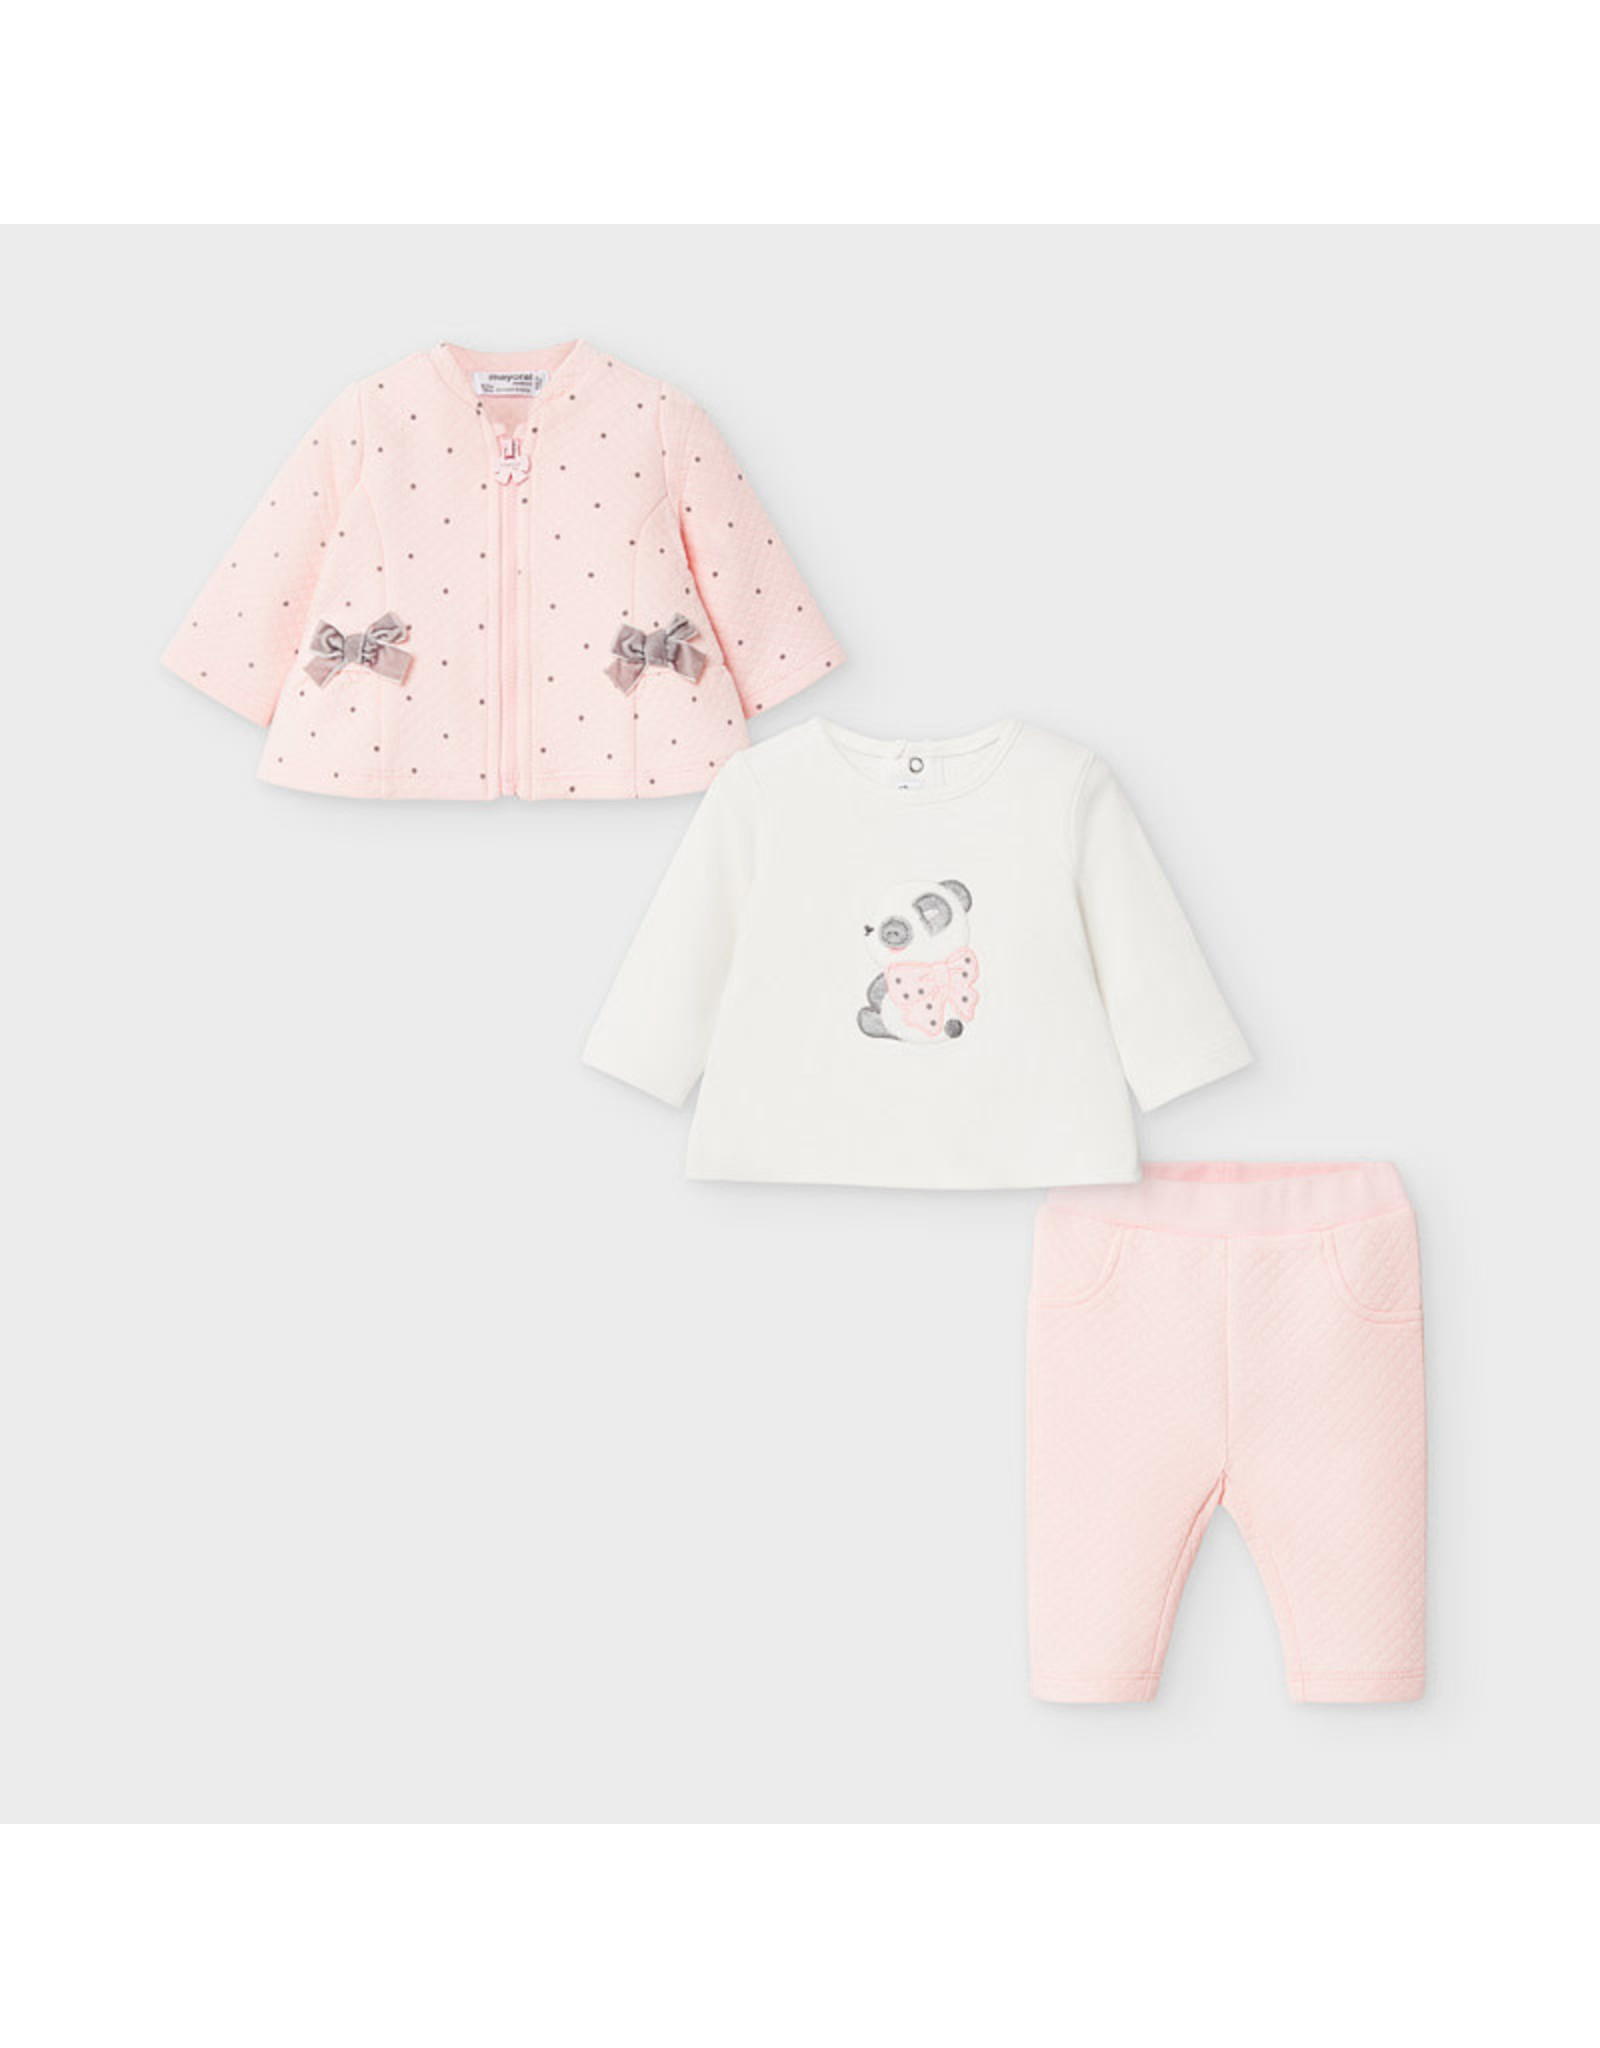 Mayoral Tracksuit 3 Piece Set in Baby Rose